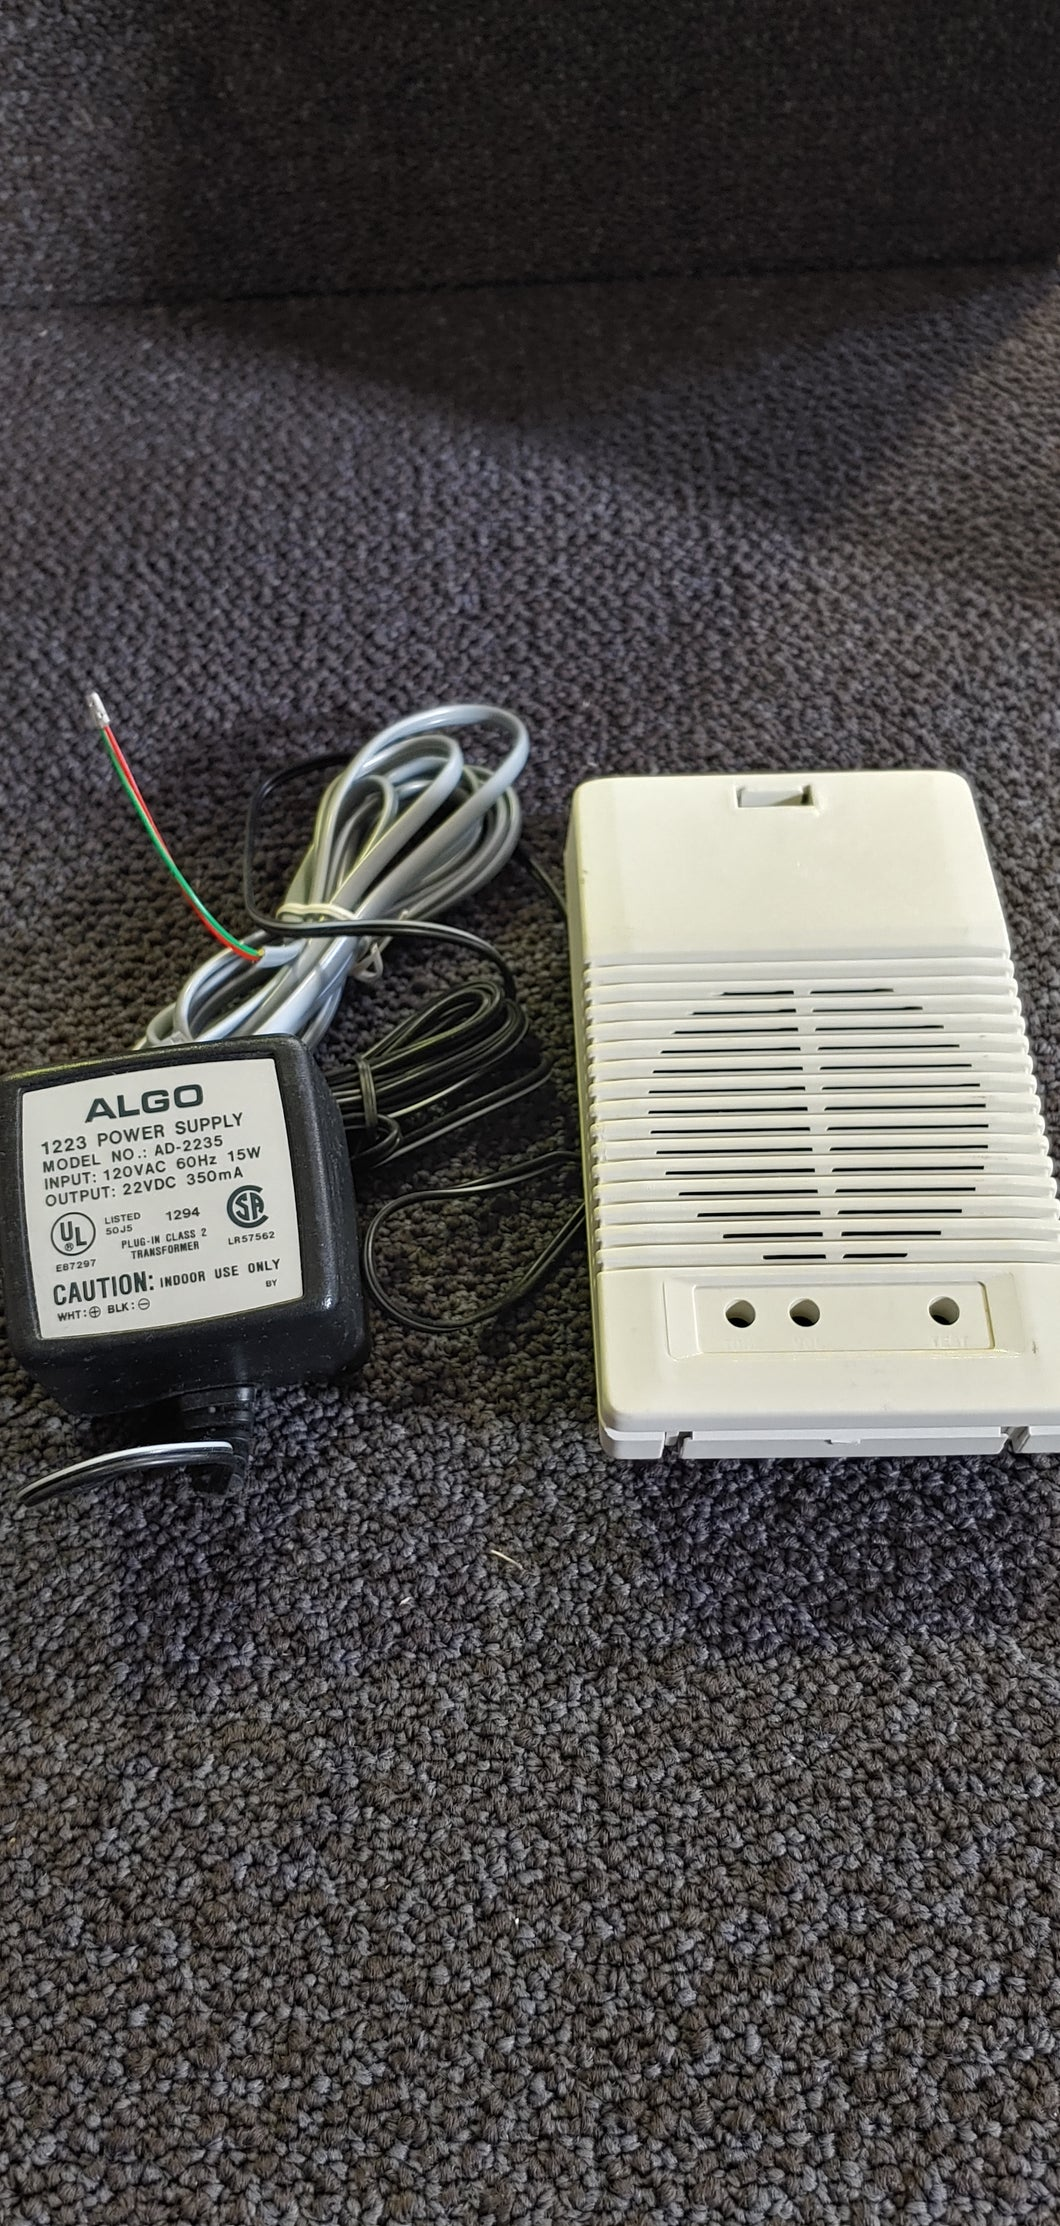 Algo Duet Plus 1825 Loud Phone Ringer with Power Supply 120vac - 22vdc (used)